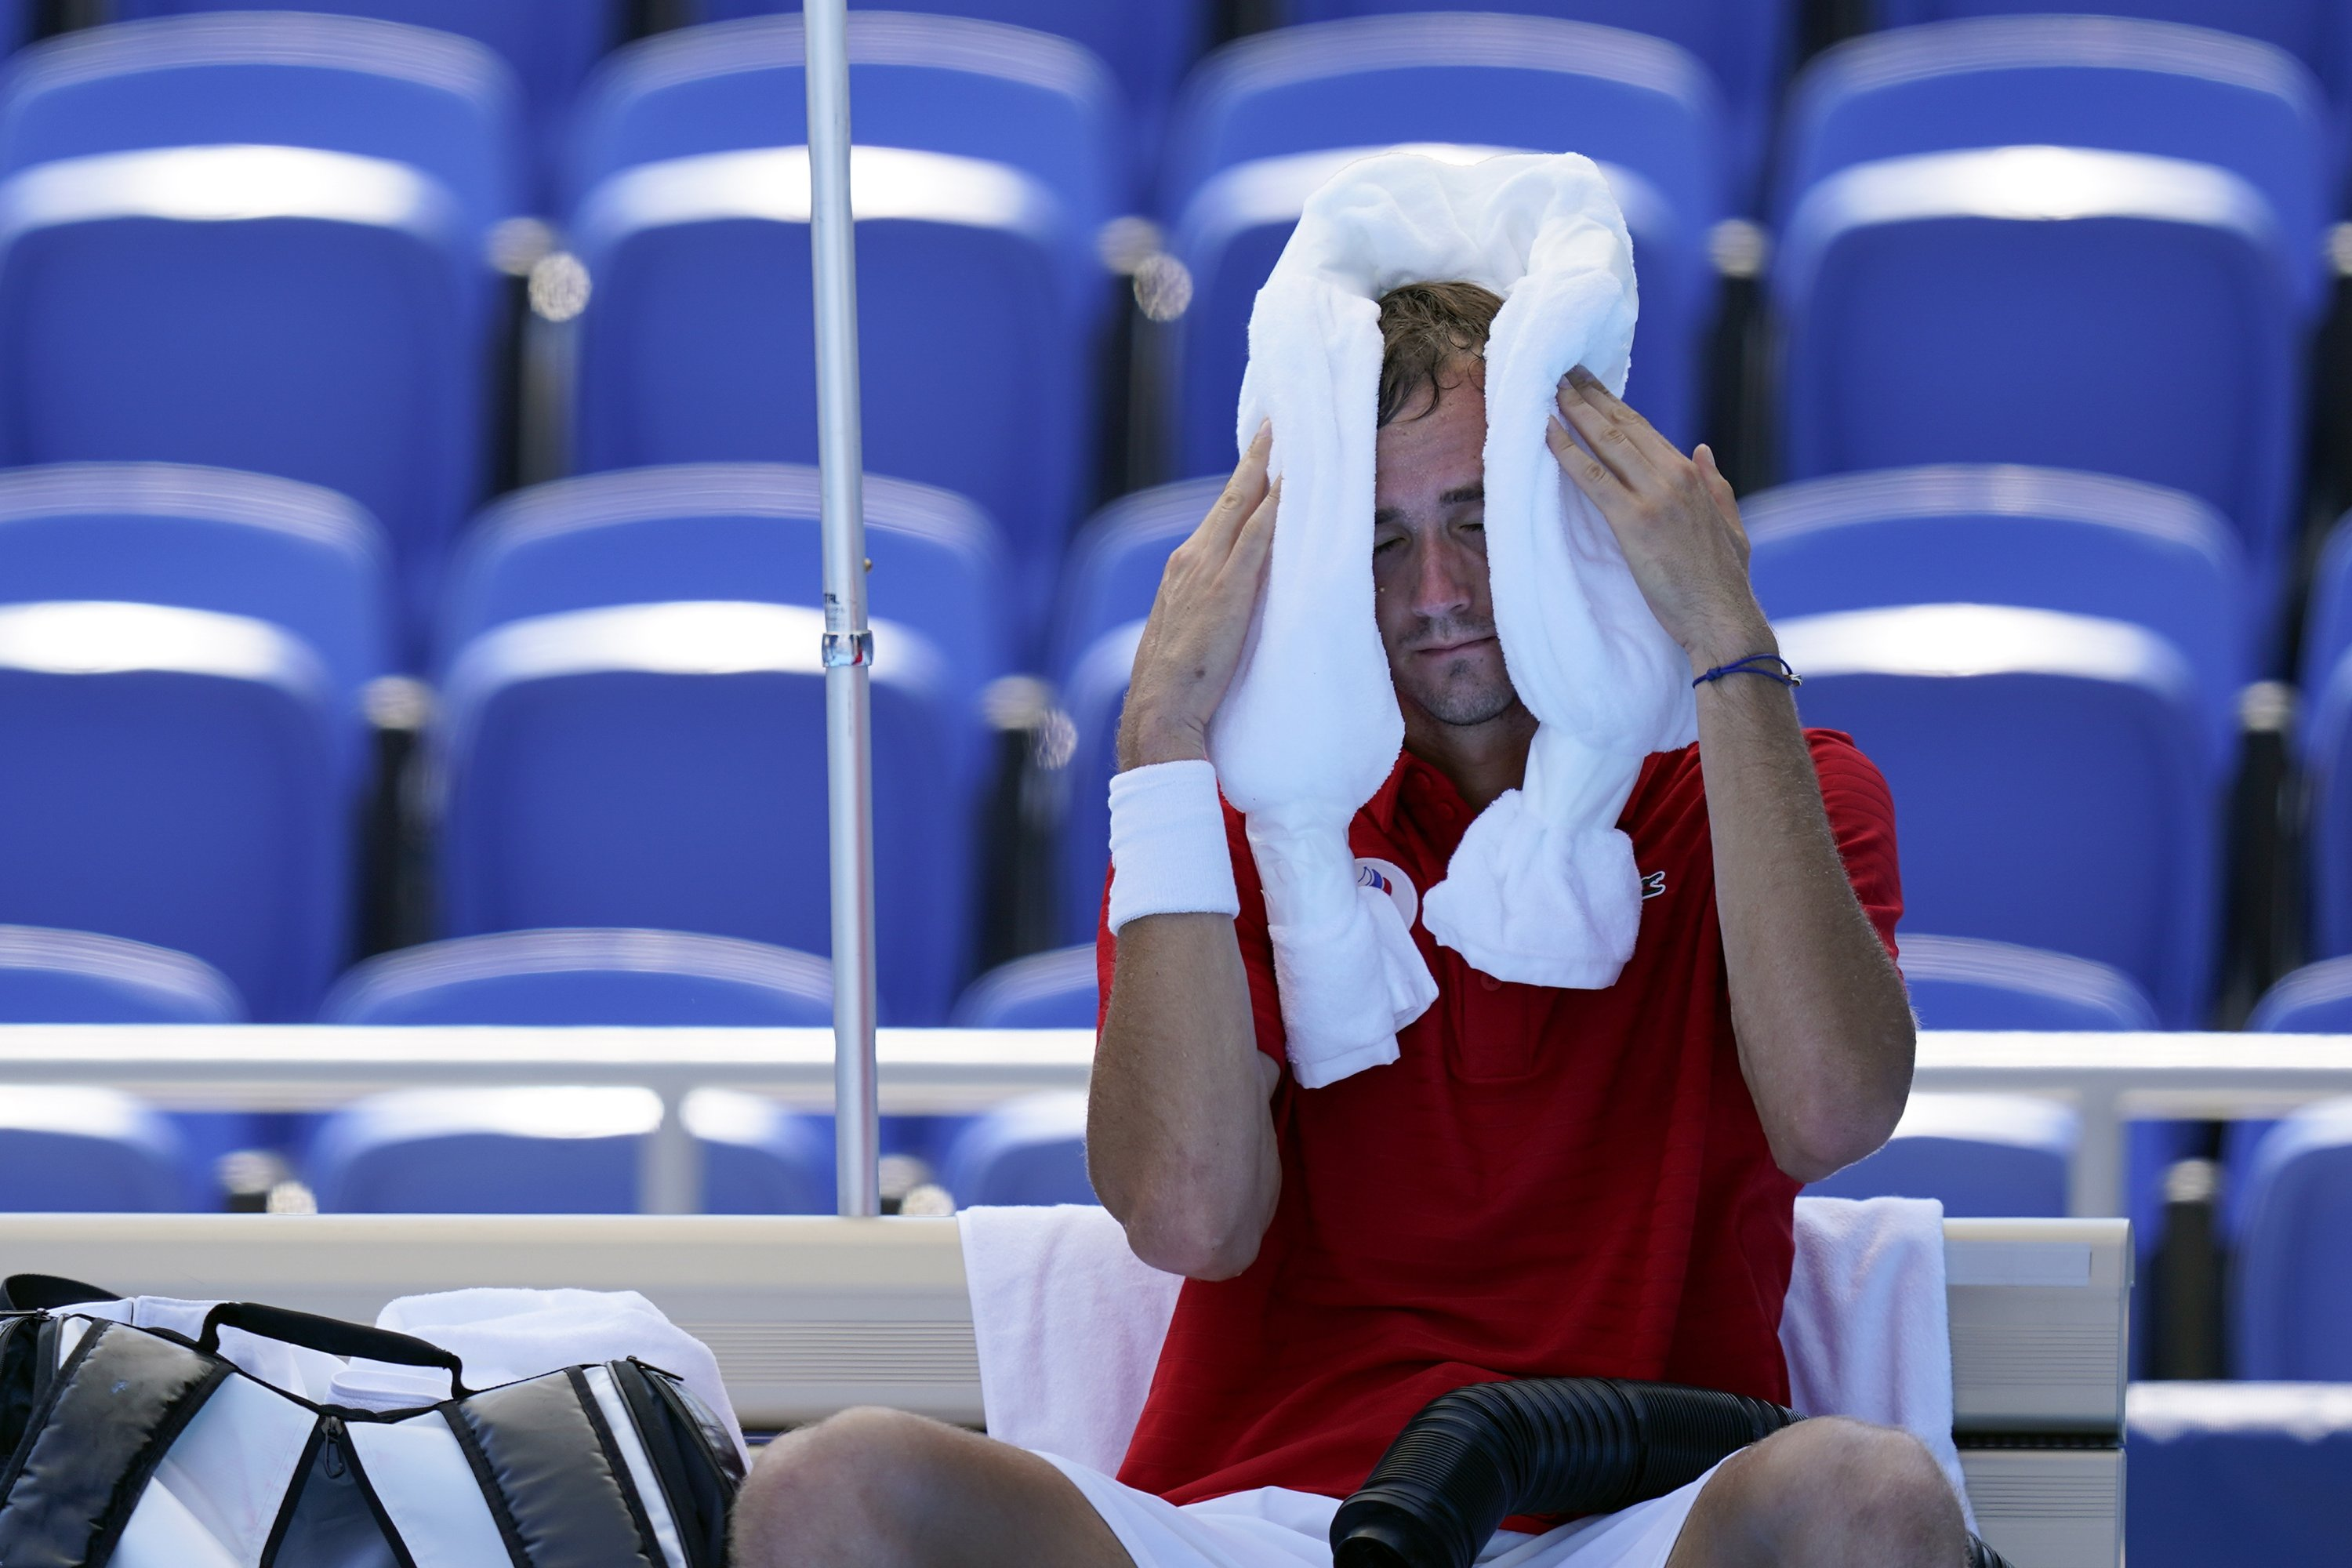 Daniil Medvedev, of the Russian Olympic Committee, cools off during a changeover in a tennis match against Alexander Bublik of Kazakhstan, during the 2020 Summer Olympics, Tokyo, Japan, July 24, 2021. (AP Photo)